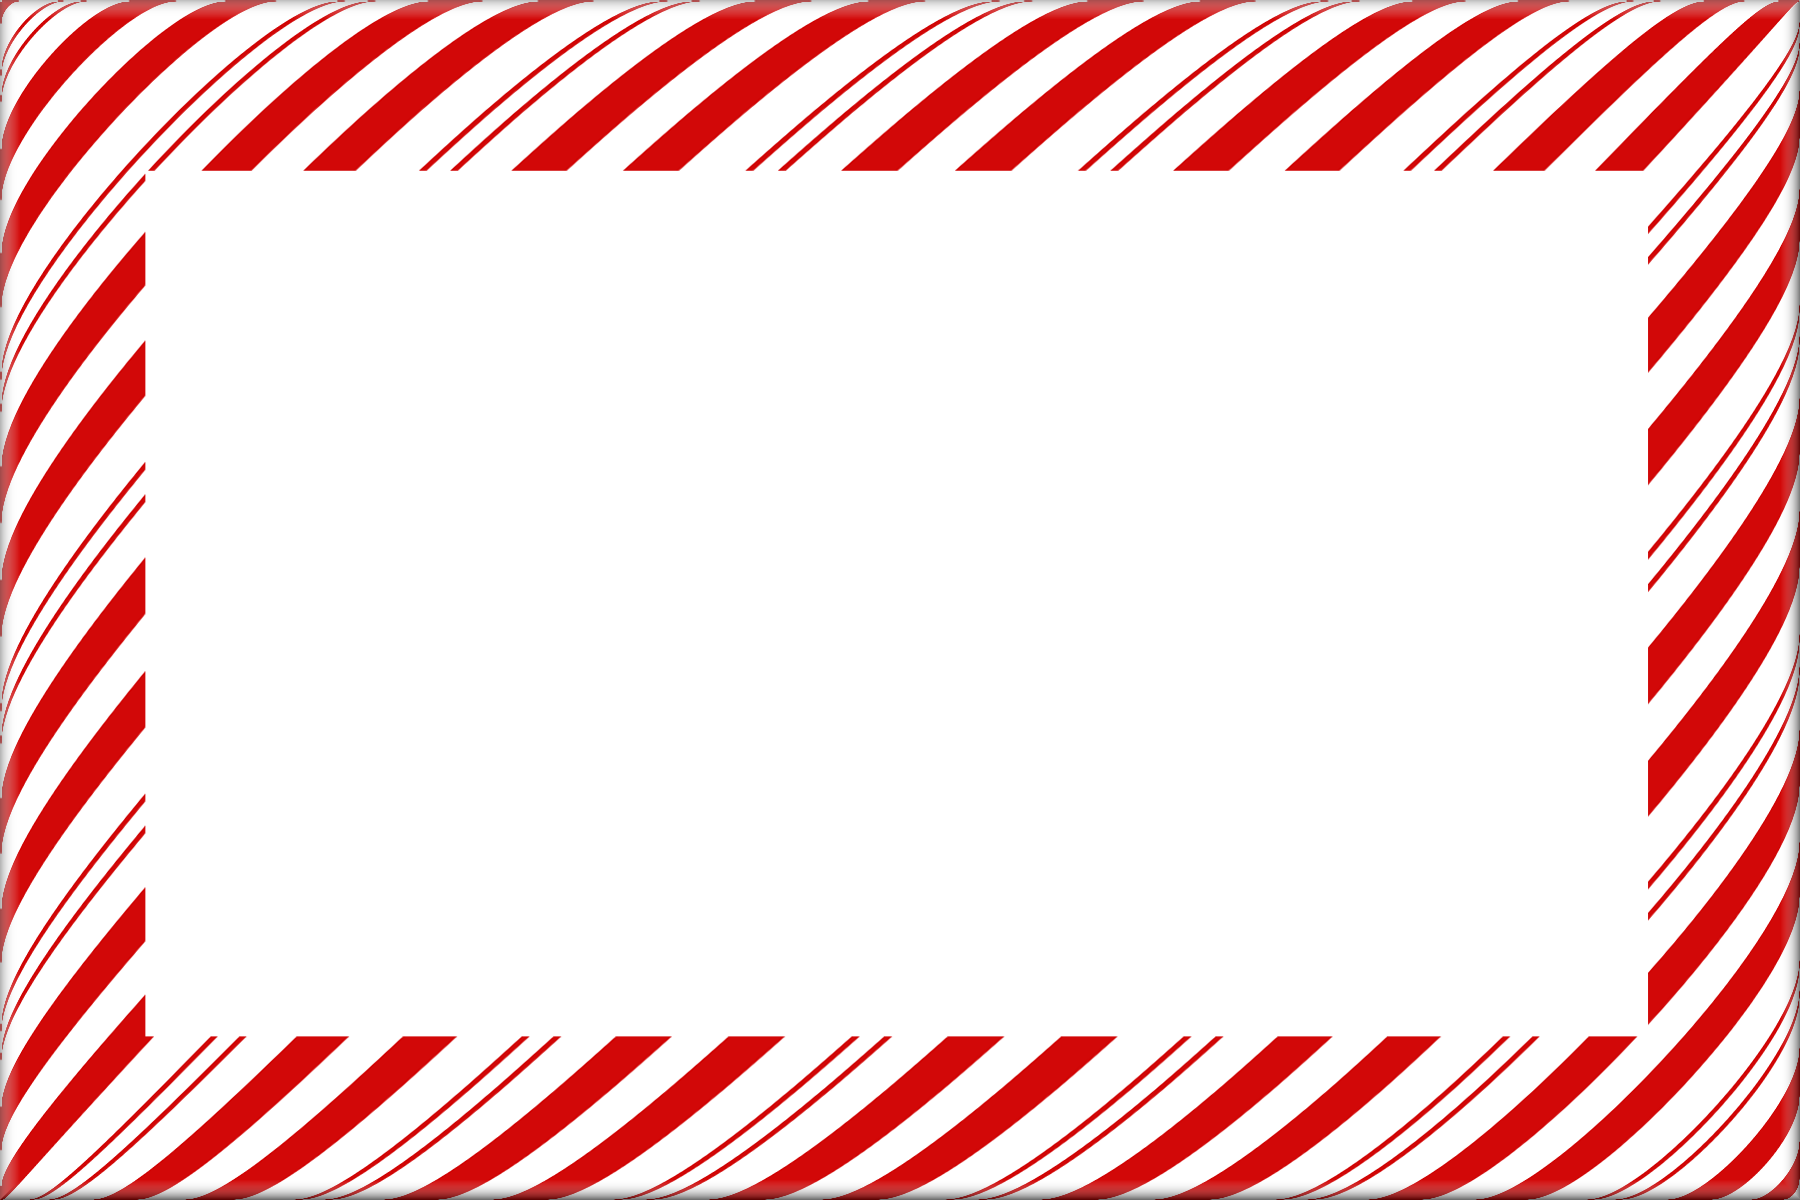 Christmas presents border clipart svg download Candy Cane Christmas Borders and Frames | digital frames & borders ... svg download